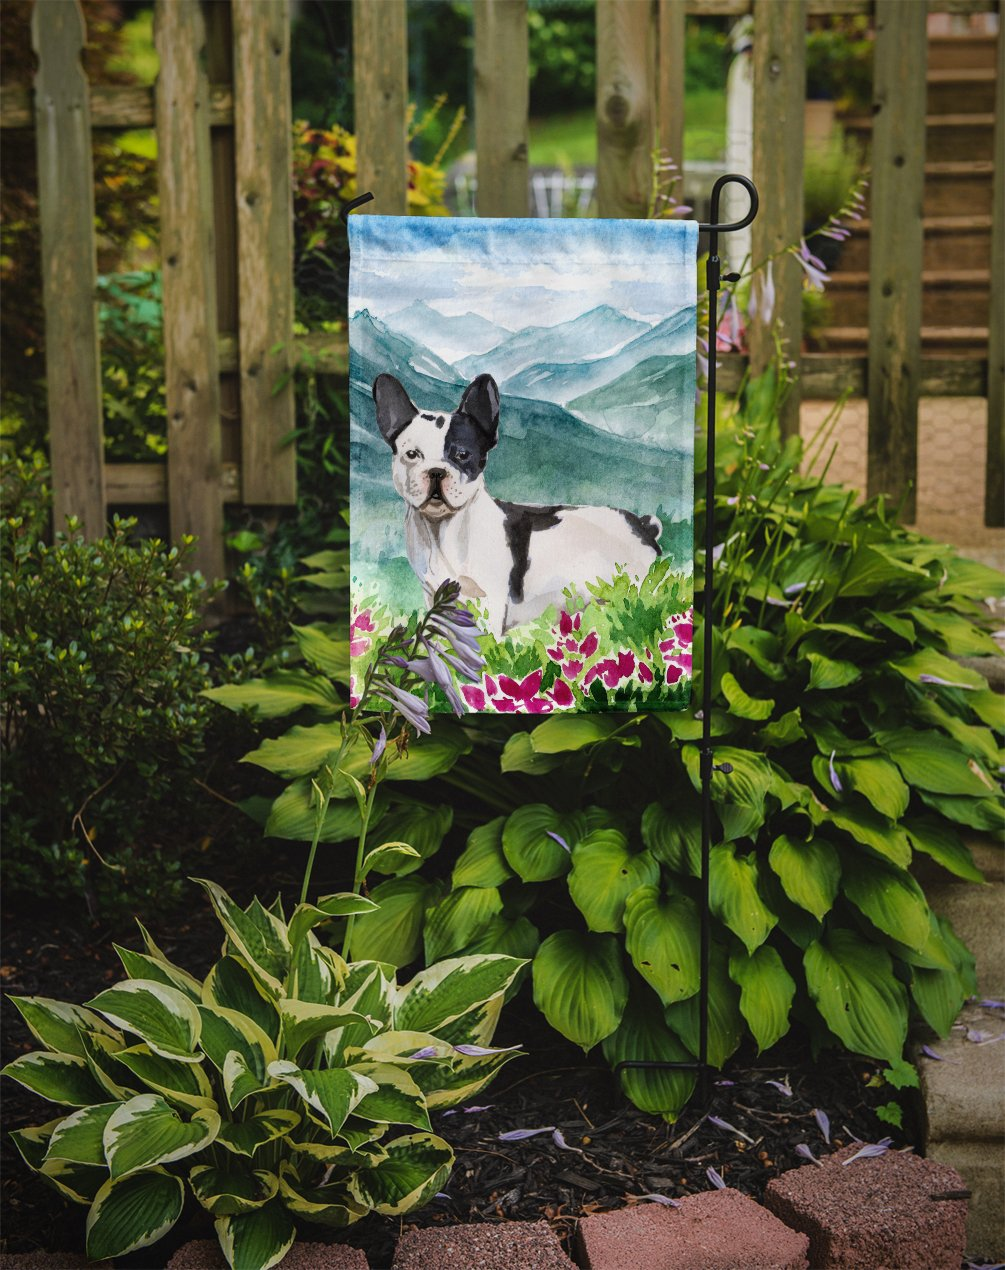 Mountian Flowers French Bulldog Flag Garden Size CK1991GF by Caroline's Treasures